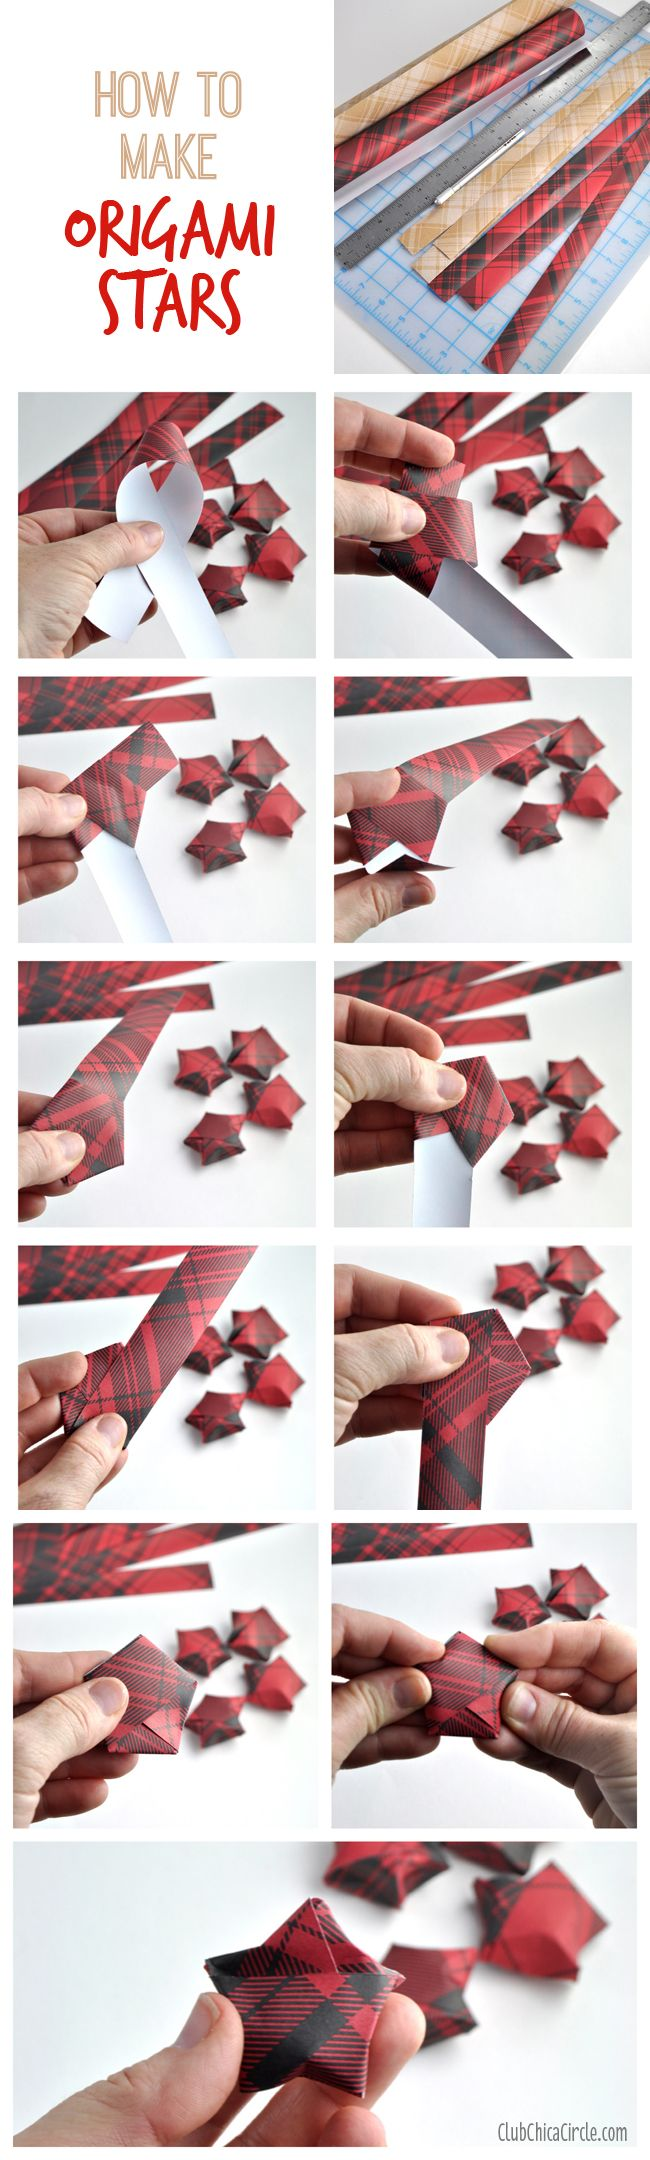 Origami Stars Holiday Garland DIY | Club Chica Circle - where crafty is contagious